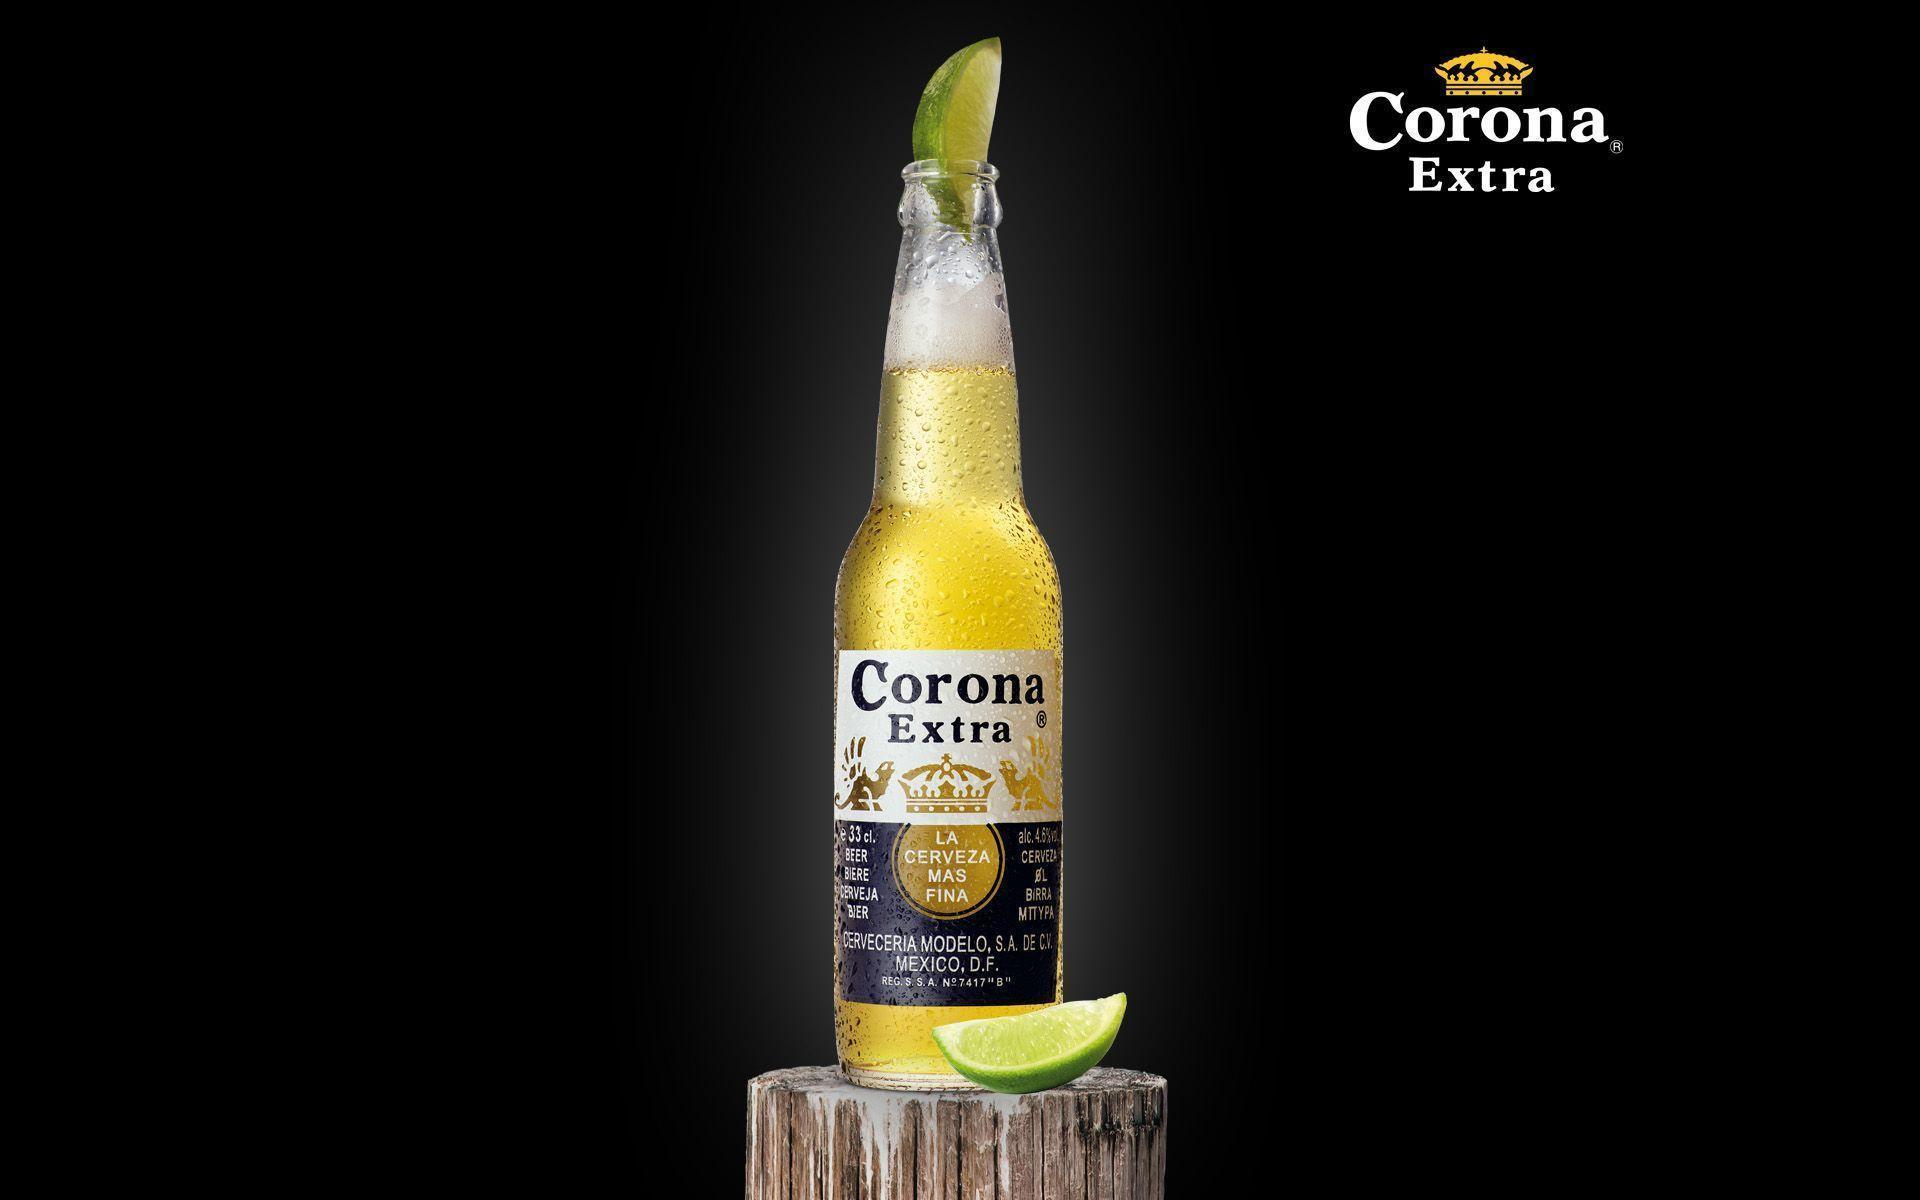 Corona Wallpapers - Wallpaper Cave